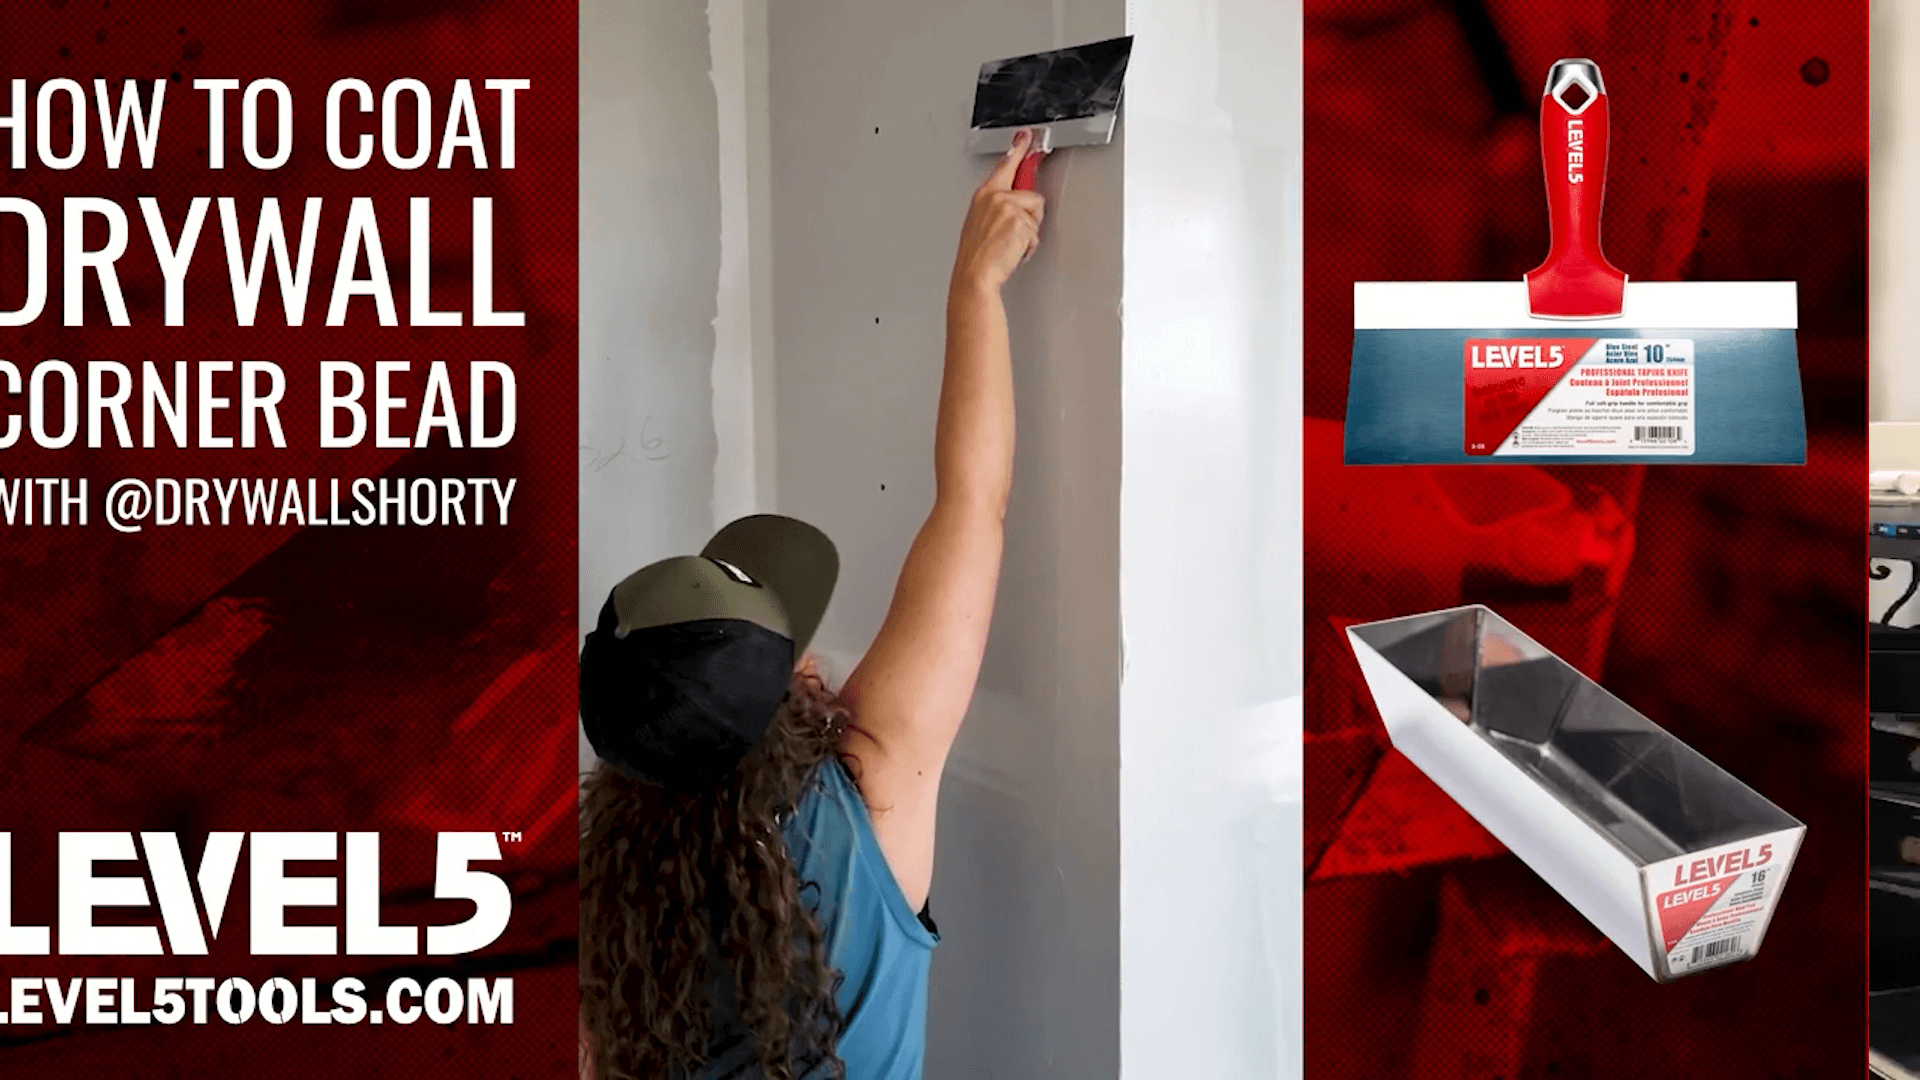 How to Coat Drywall Corner Bead | Drywall Shorty